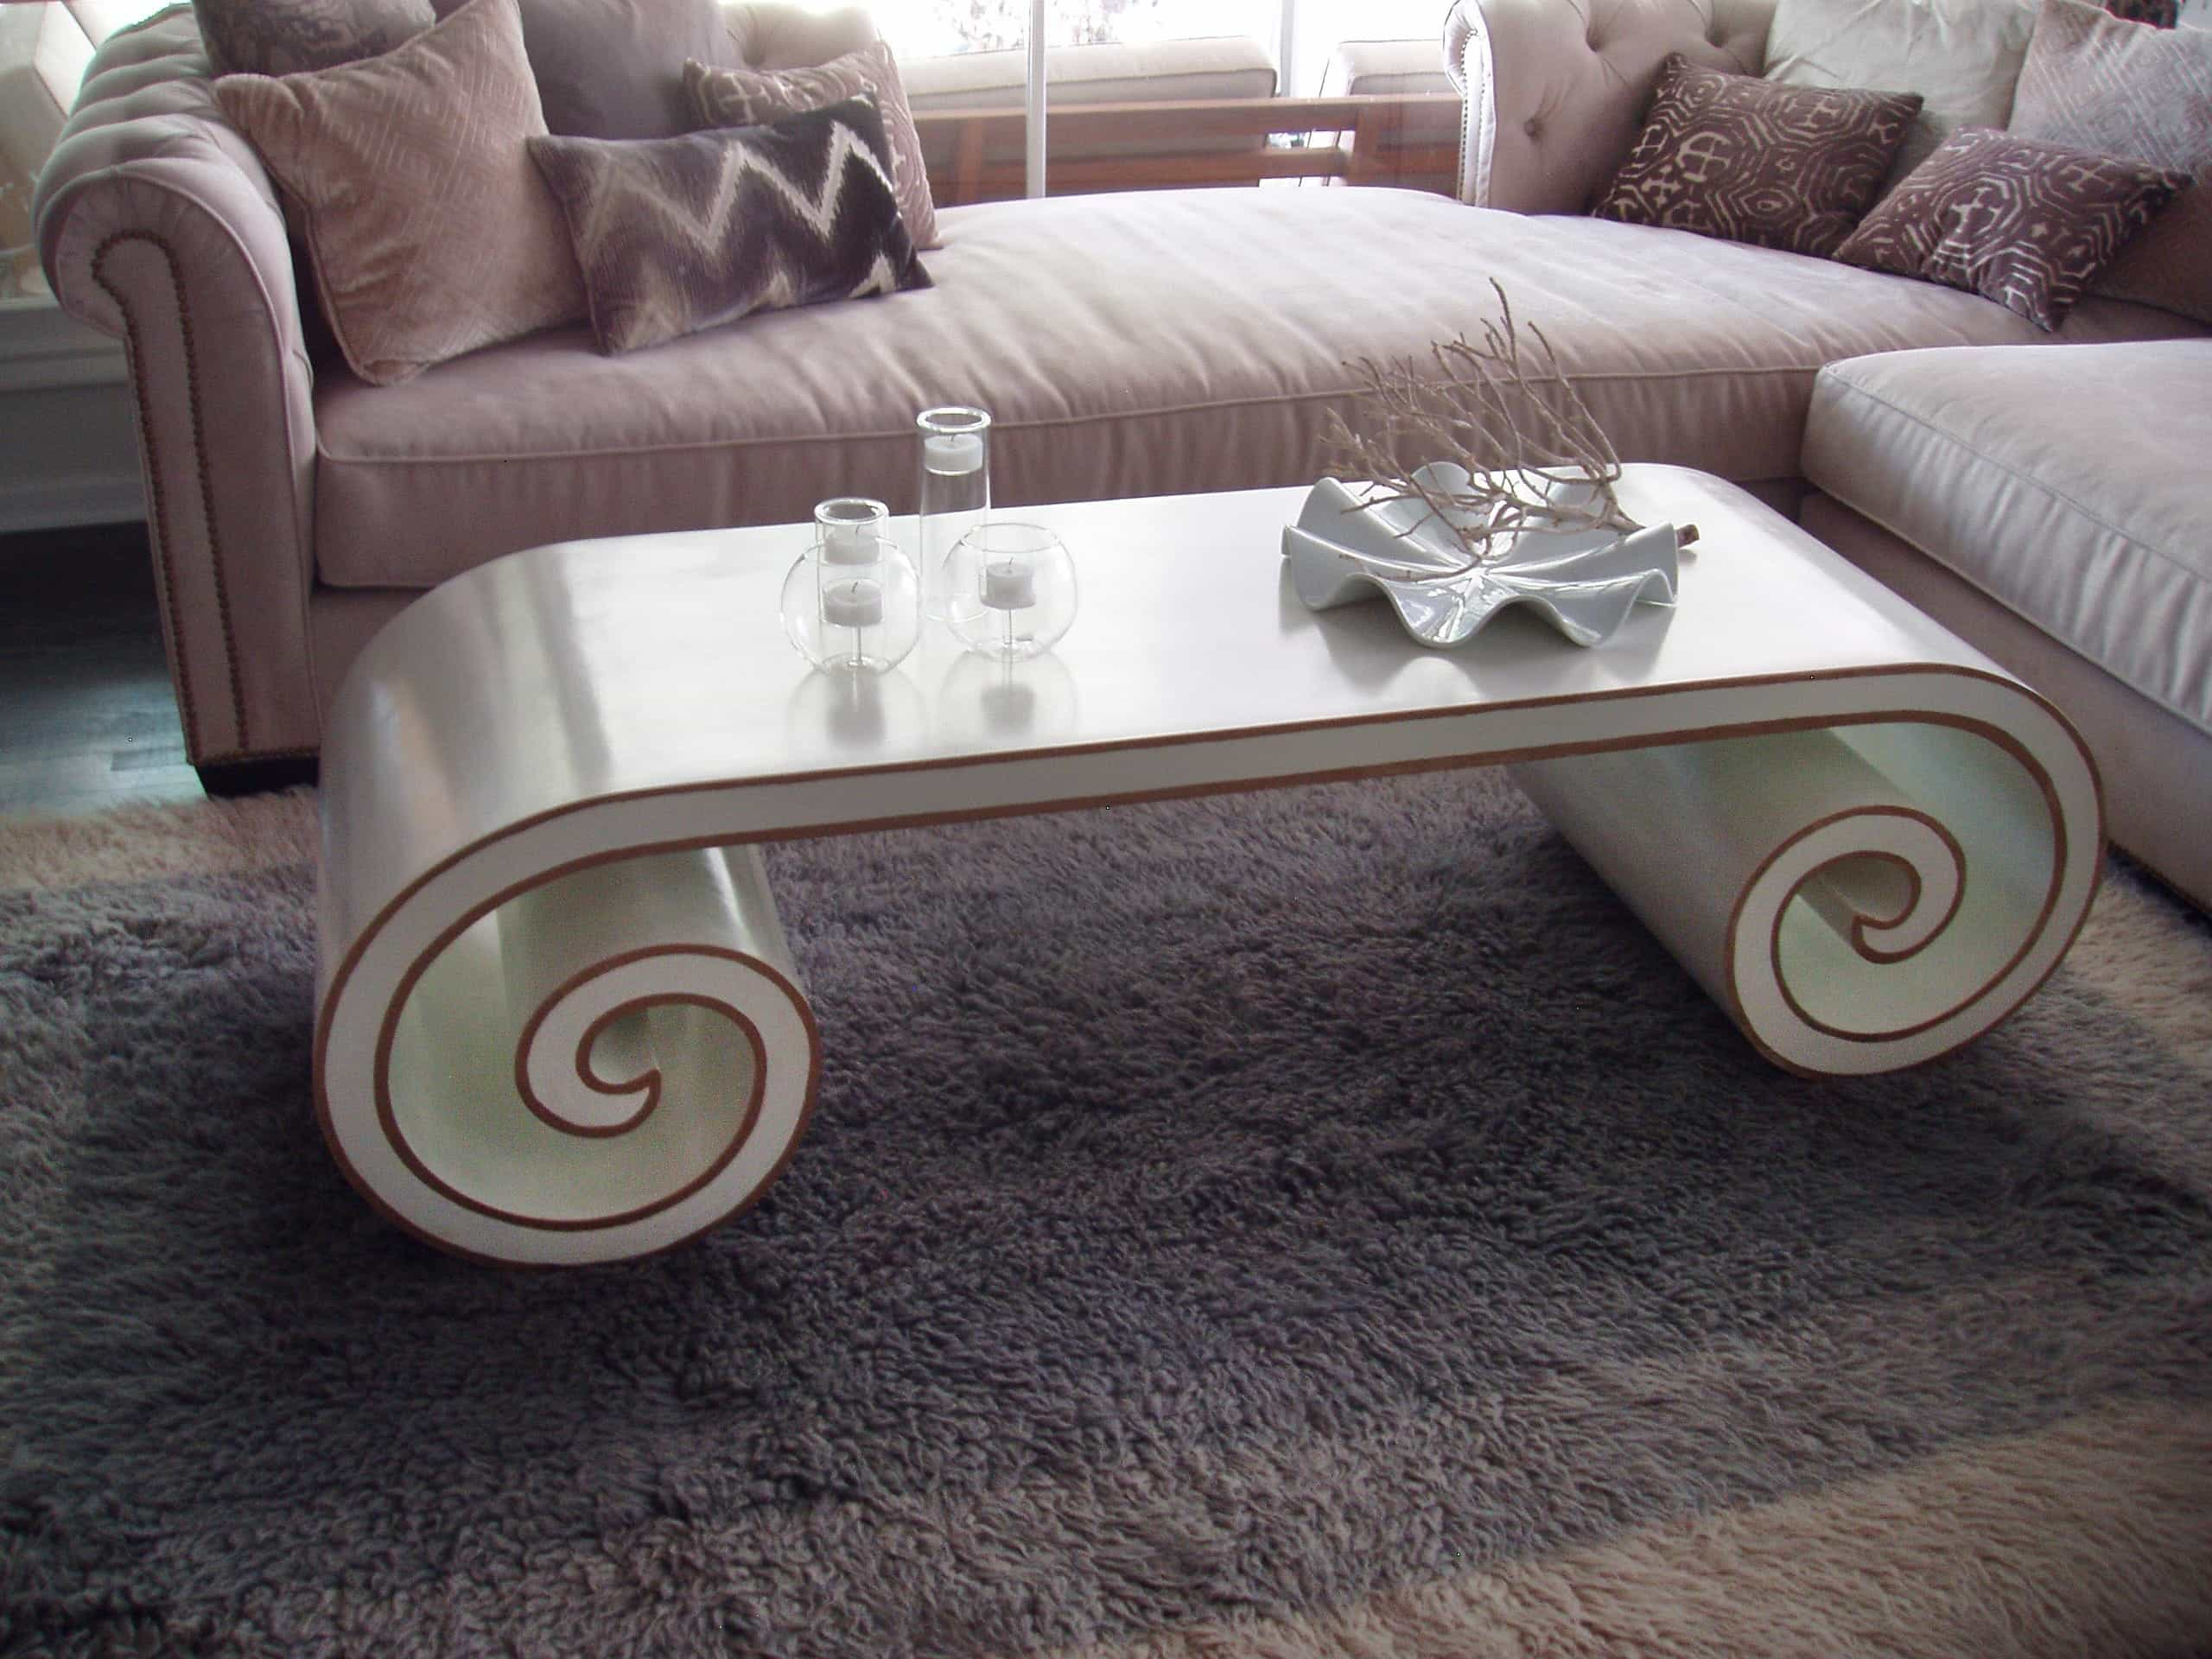 Hand Painted Curved Coffee Table With Purple Sofa (Image 17 of 32)